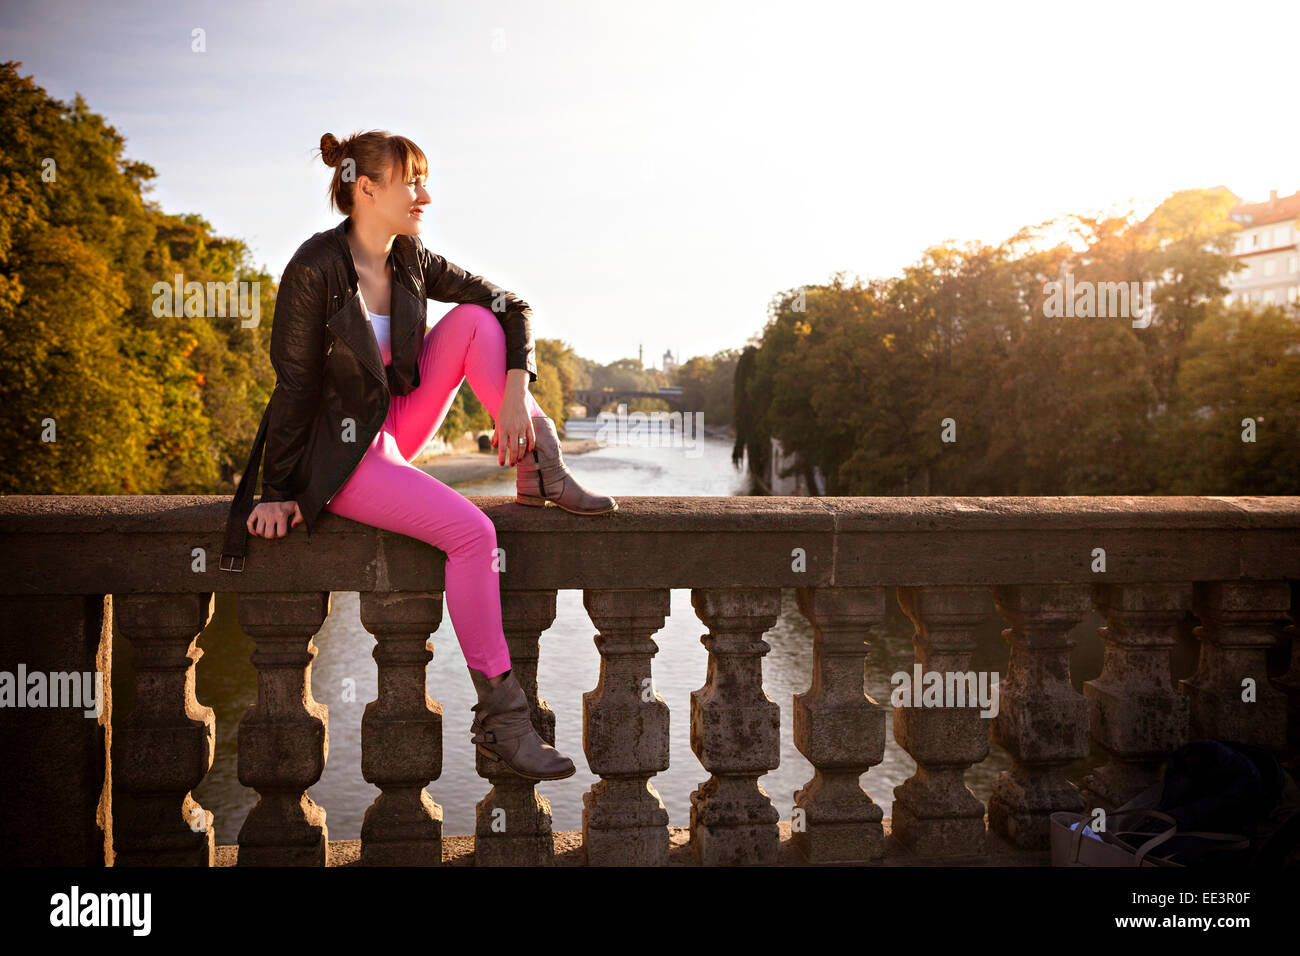 Young woman day dreaming on bridge, Munich, Bavaria, Germany - Stock Image